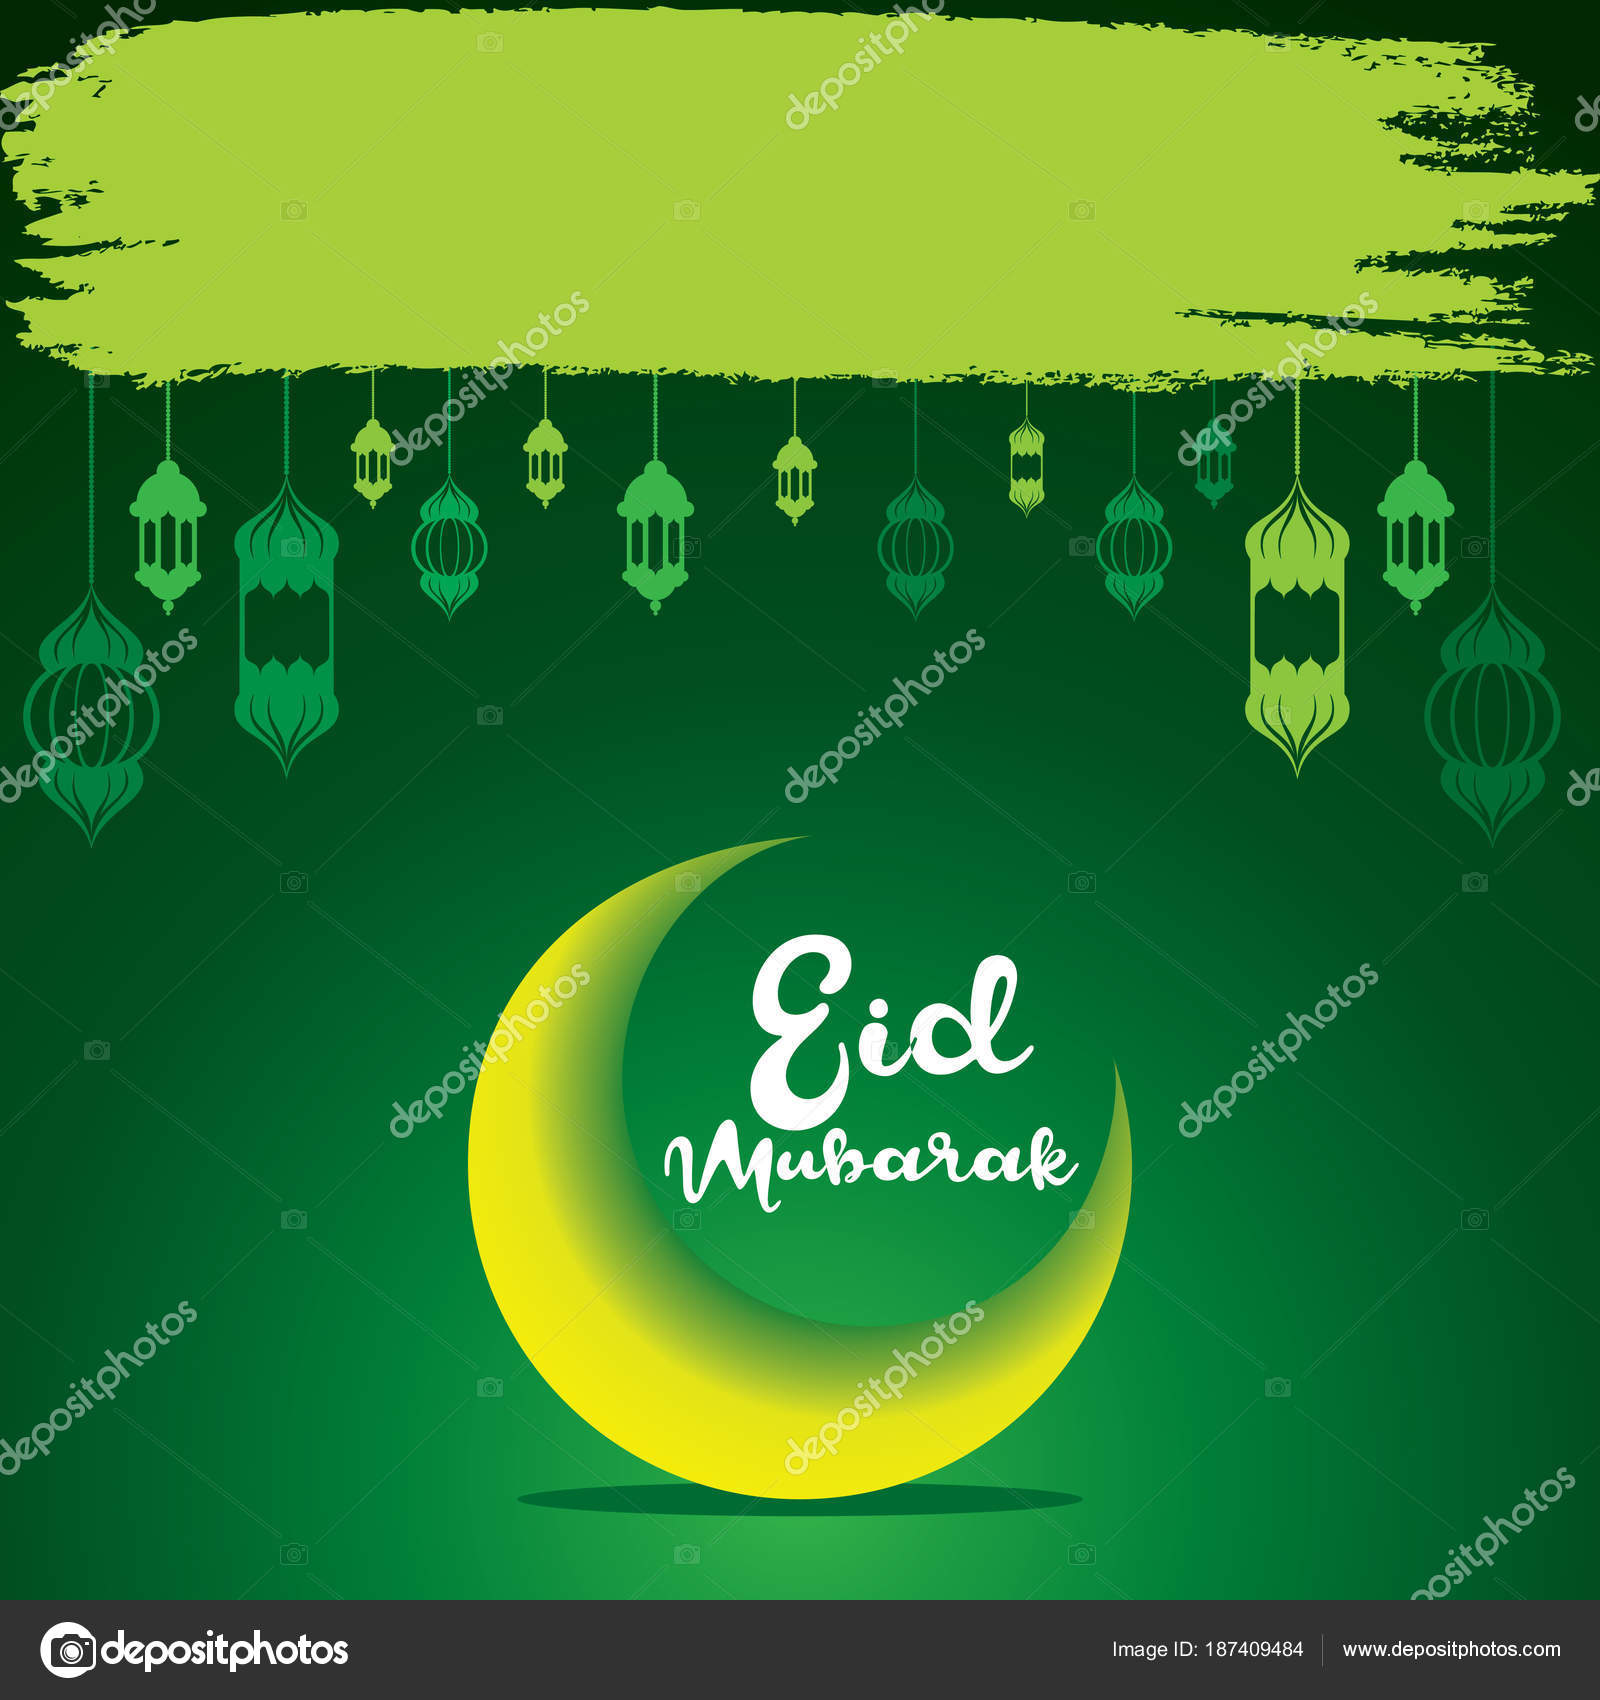 Depositphotos Stock Illustration Happy Eid Mubarak Greeting Design Creative Festival Vector By Vectotaart